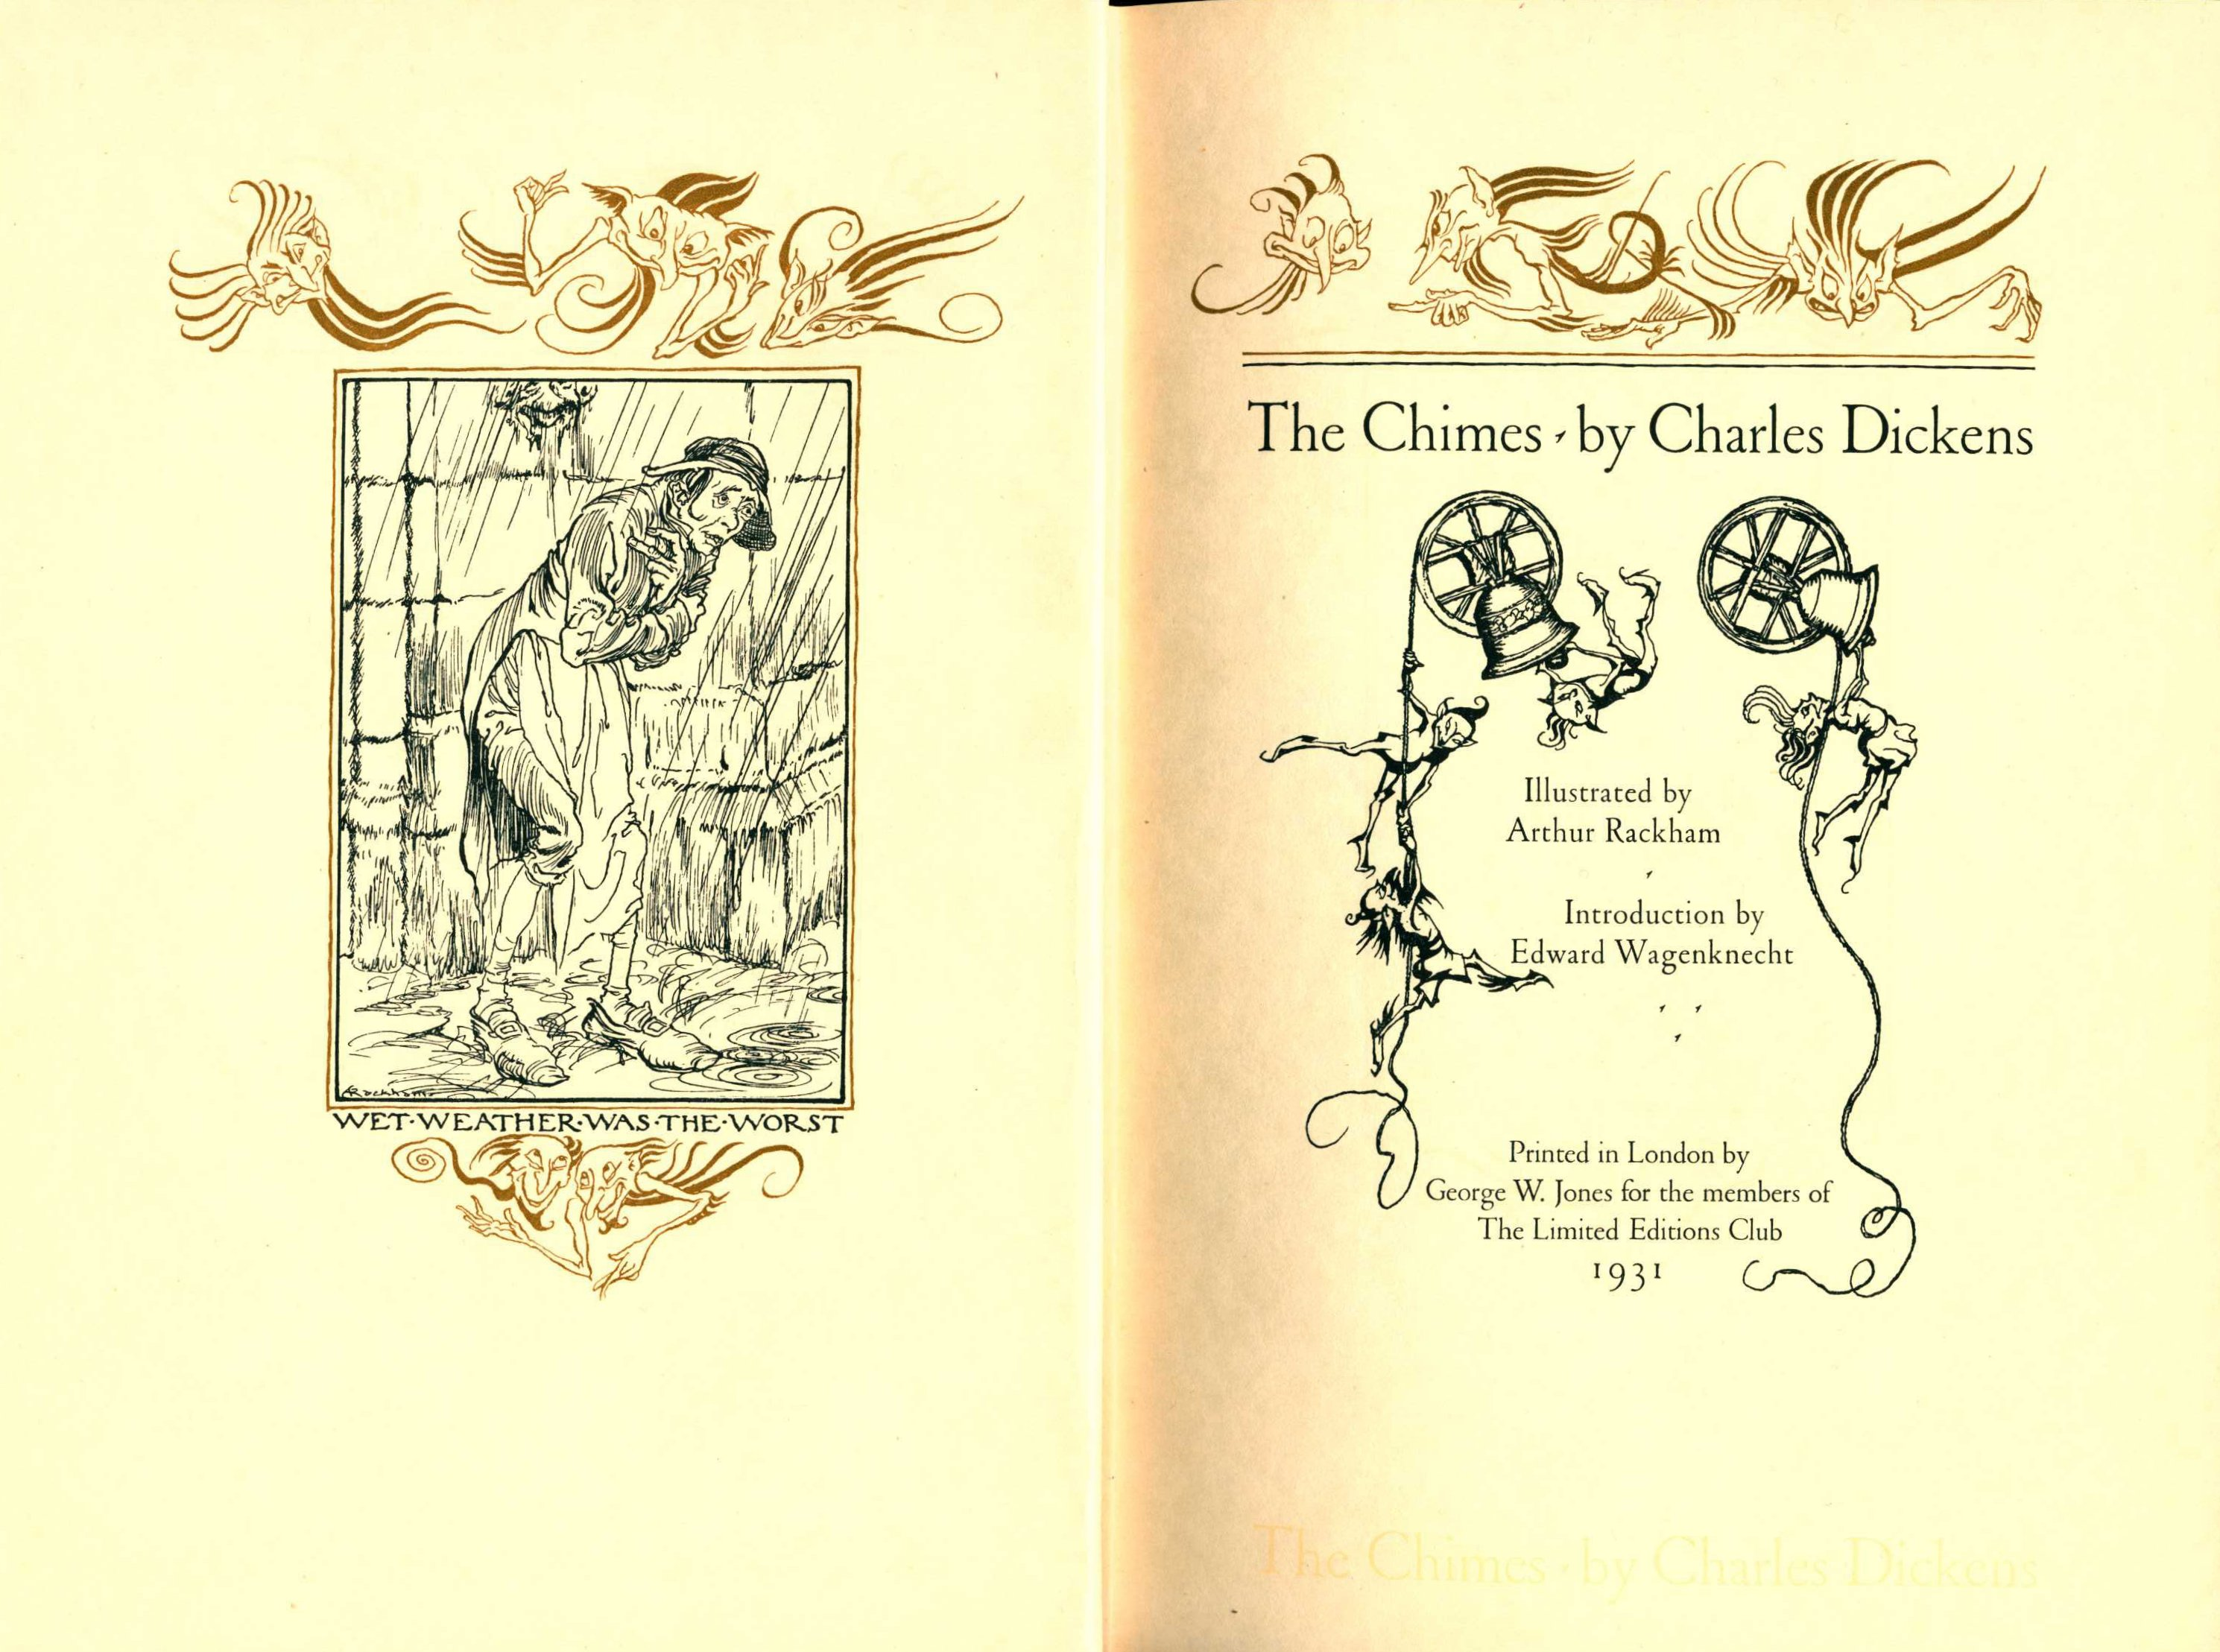 Charles Dickens. The chimes. Illustrations by Arthur Rackham. London: Limited Editions Club, 1931.